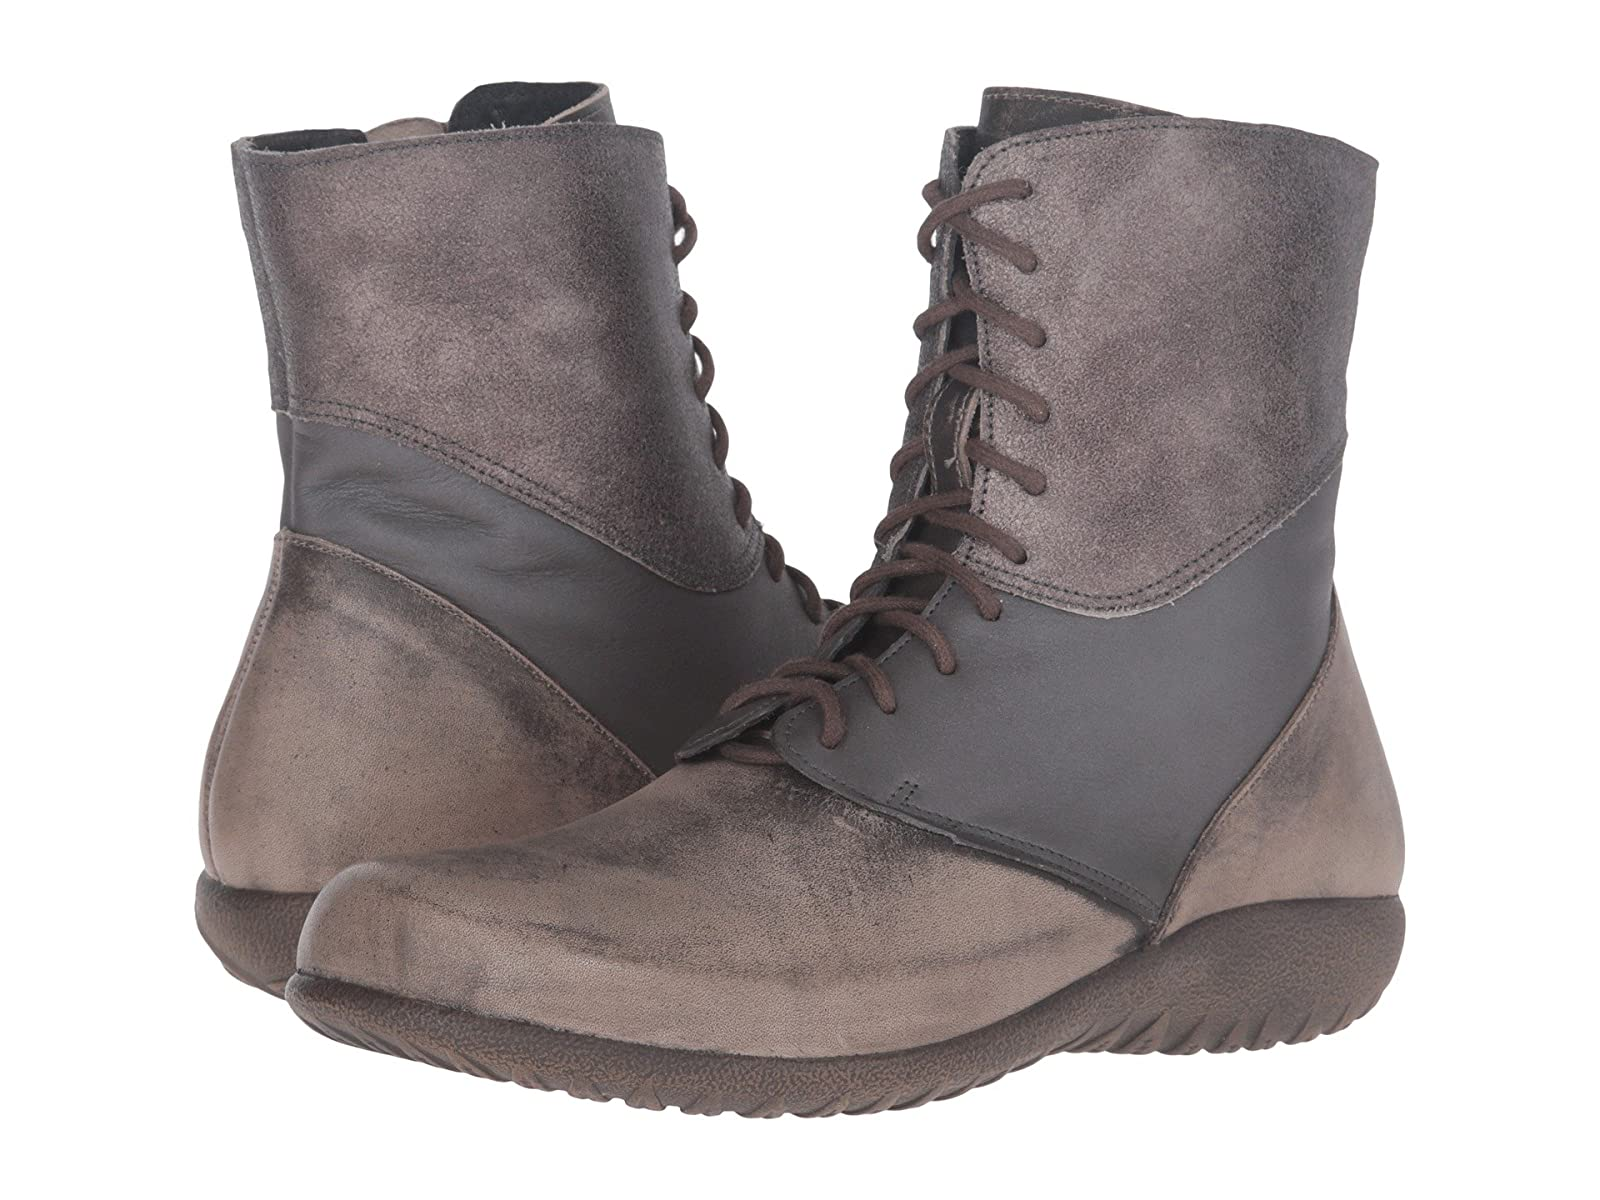 Naot AtopaEconomical and quality shoes